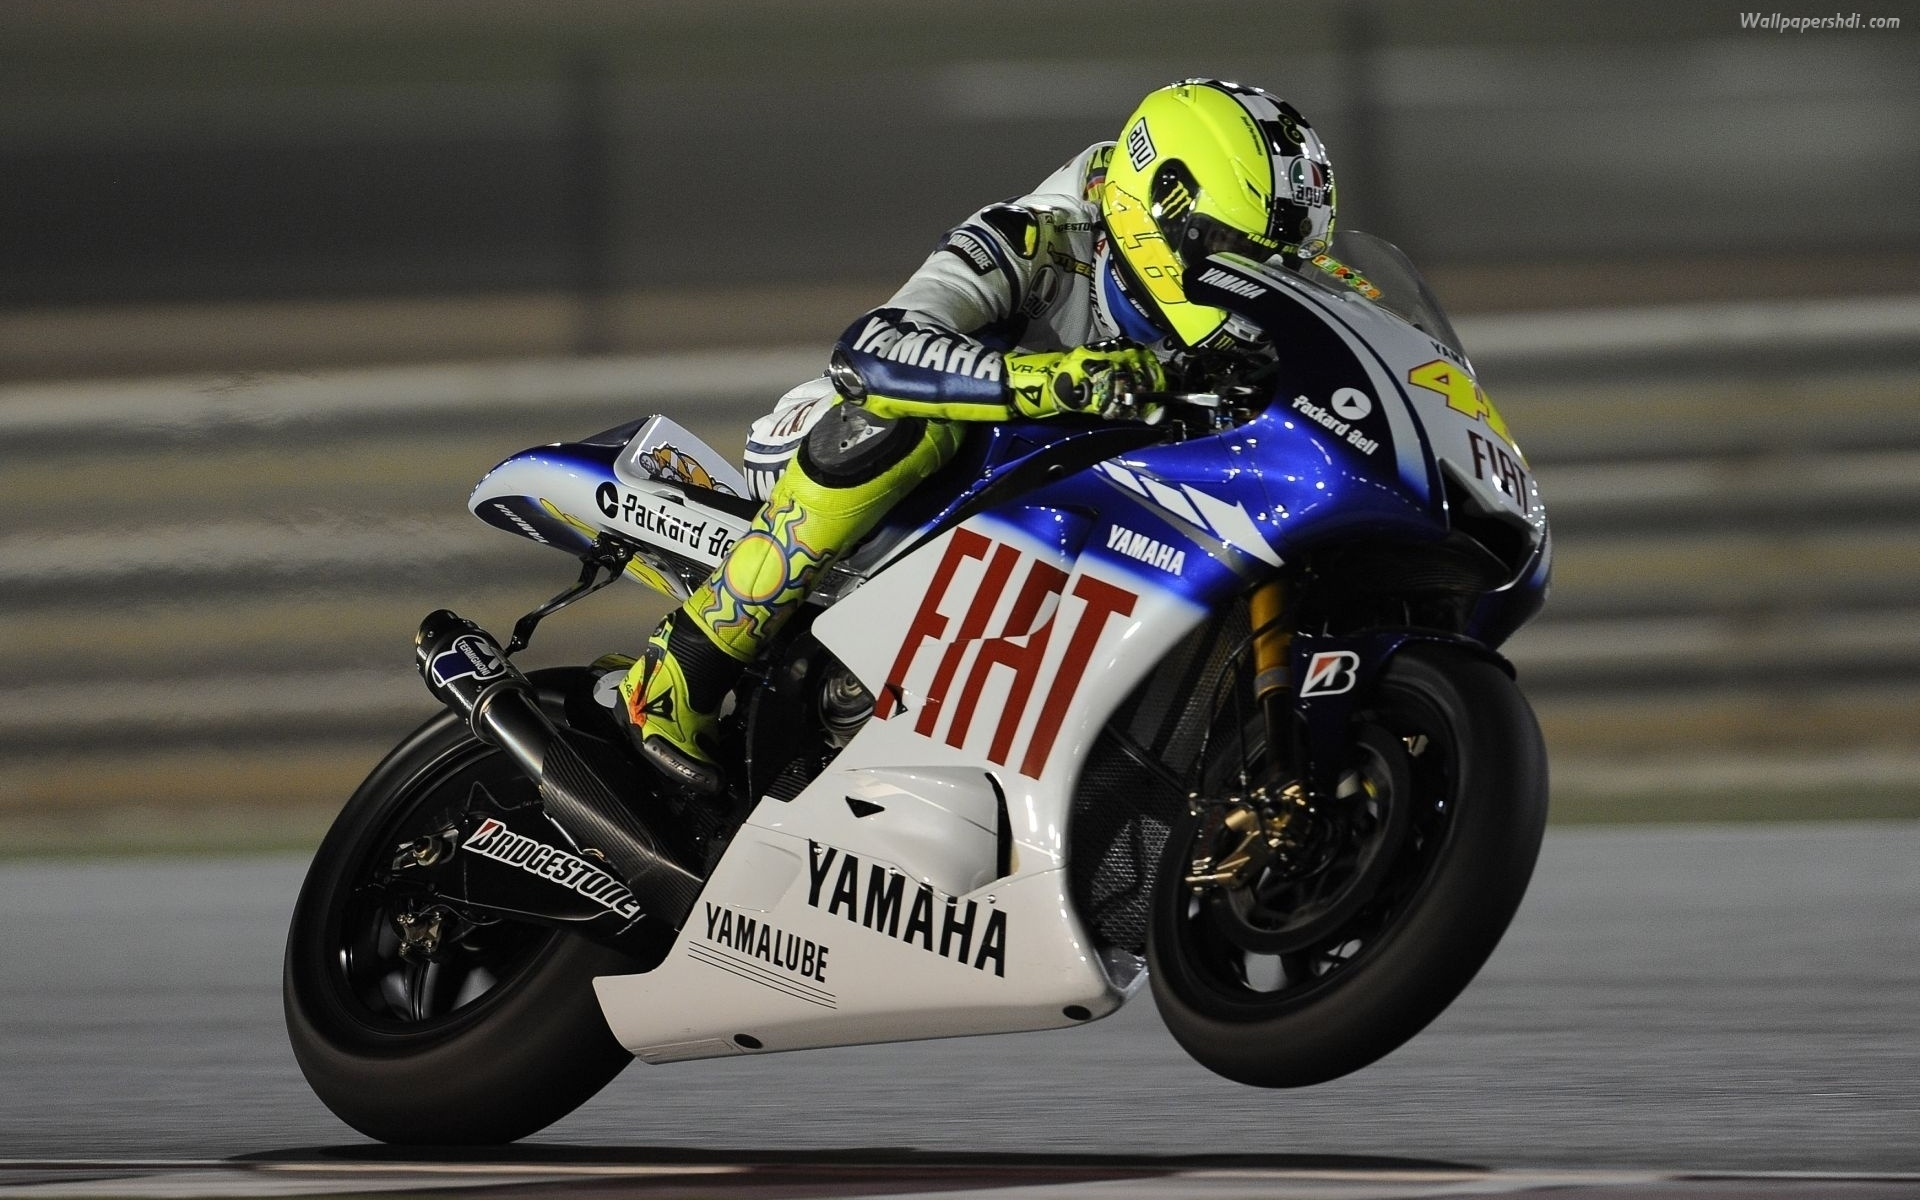 Wallpaper iphone valentino rossi - Hd Otife Spongebob Valentino Rossi Hd For Free Wallpaper